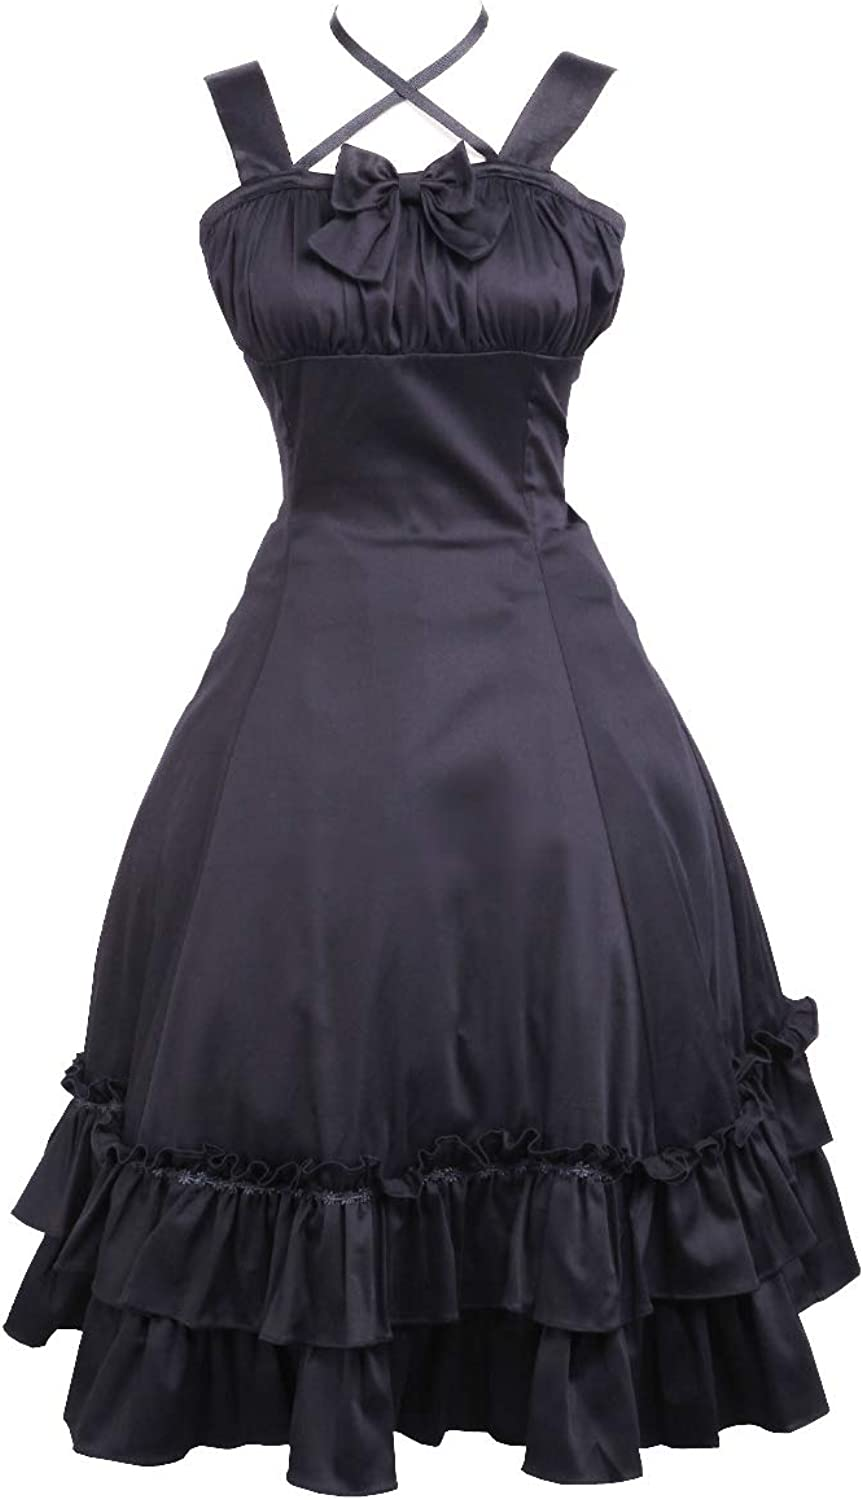 Antaina Black Cotton Halter Ruffle Bow Classic Gothic Lolita Cosplay Dress